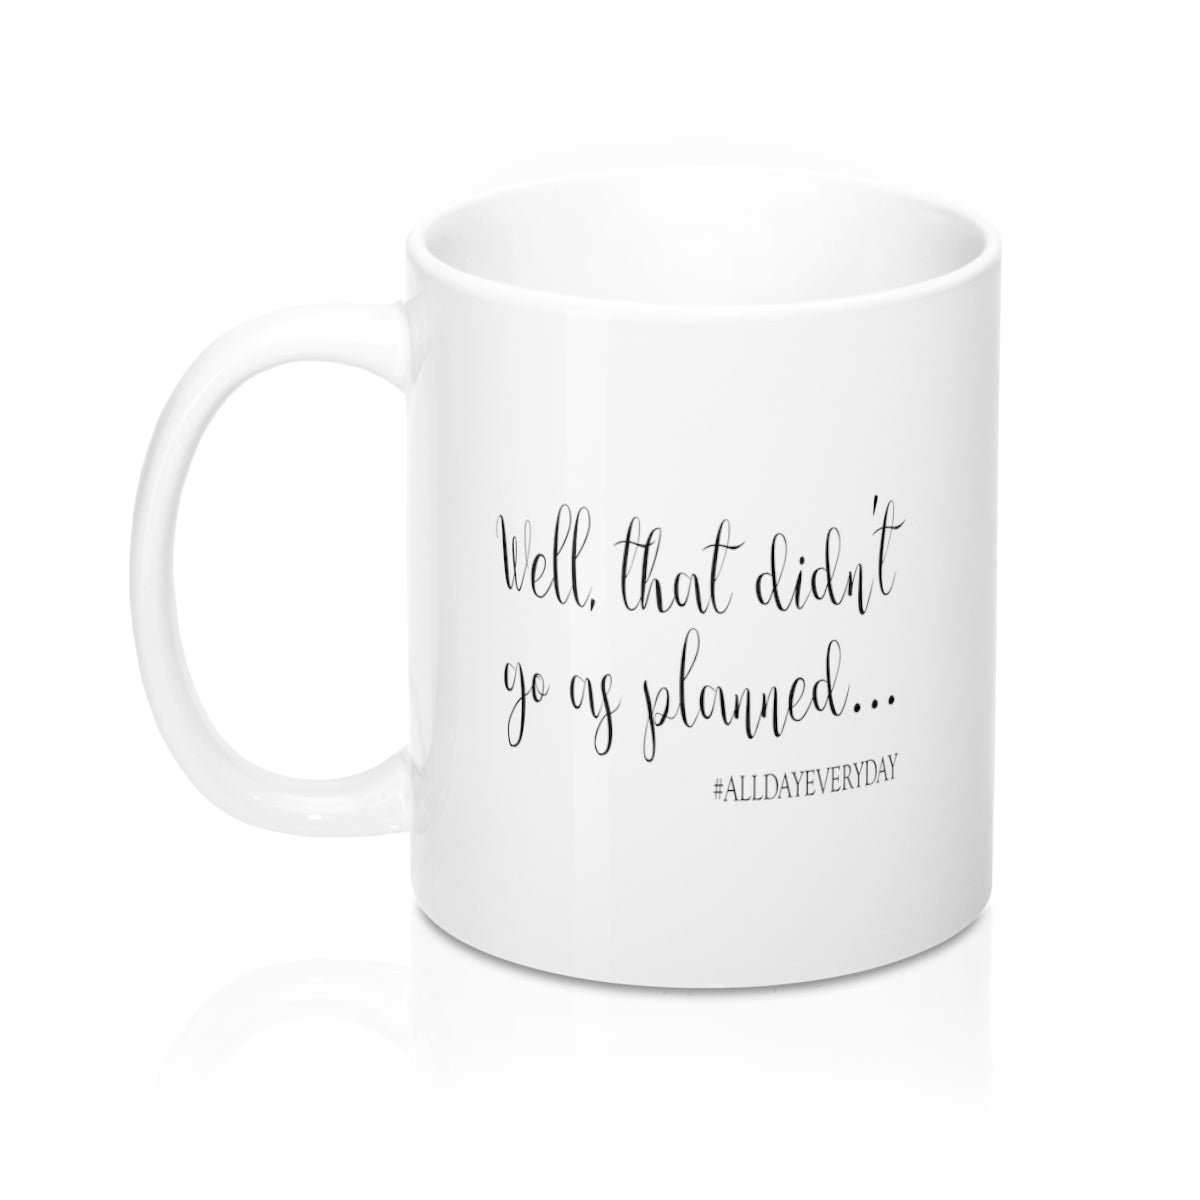 Copy of Mugs Well That Didn't Go As Planned - elrileygifts